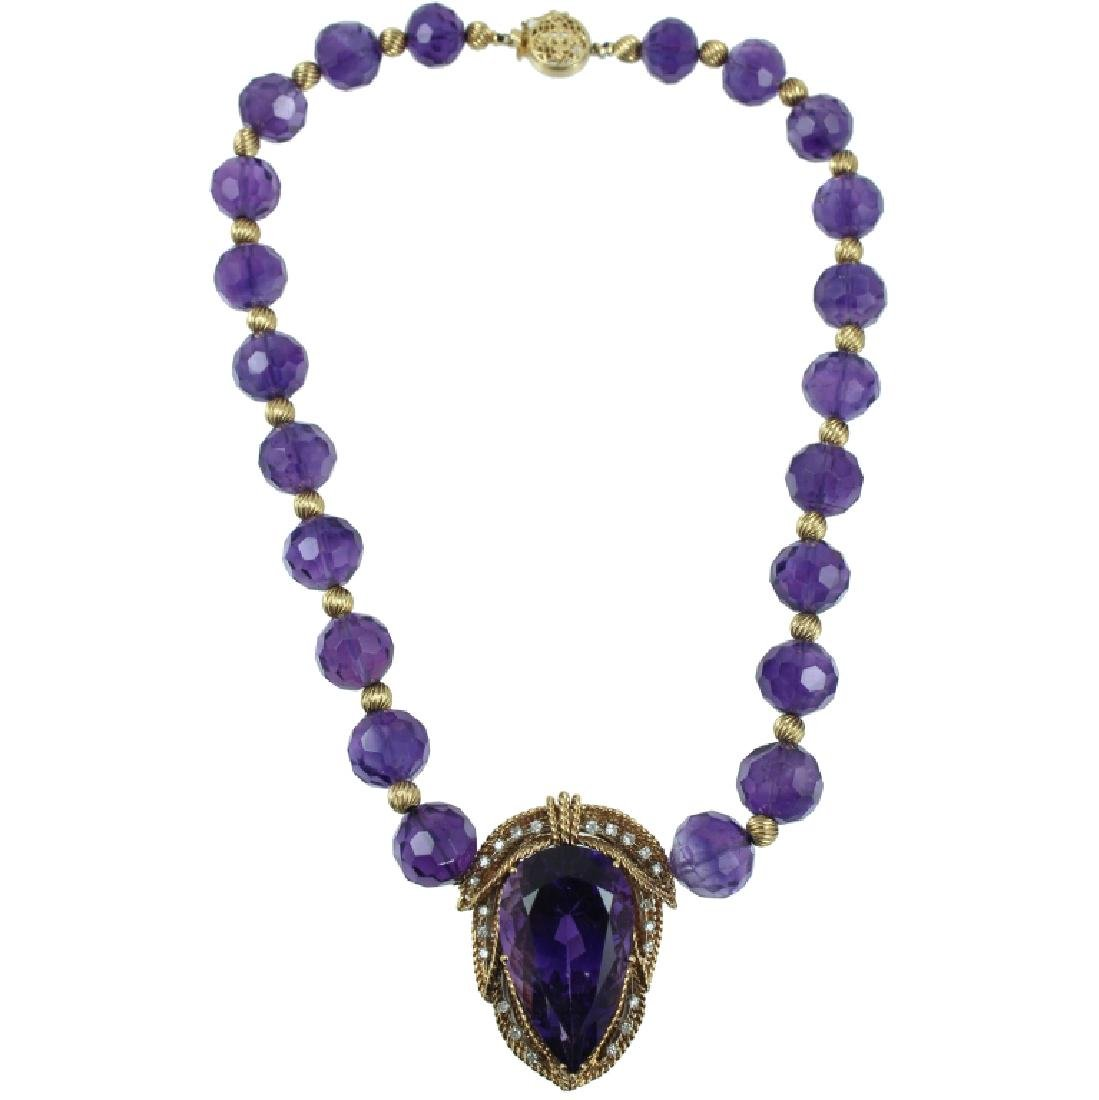 A Very Fine Amethyst & Diamond Necklace.